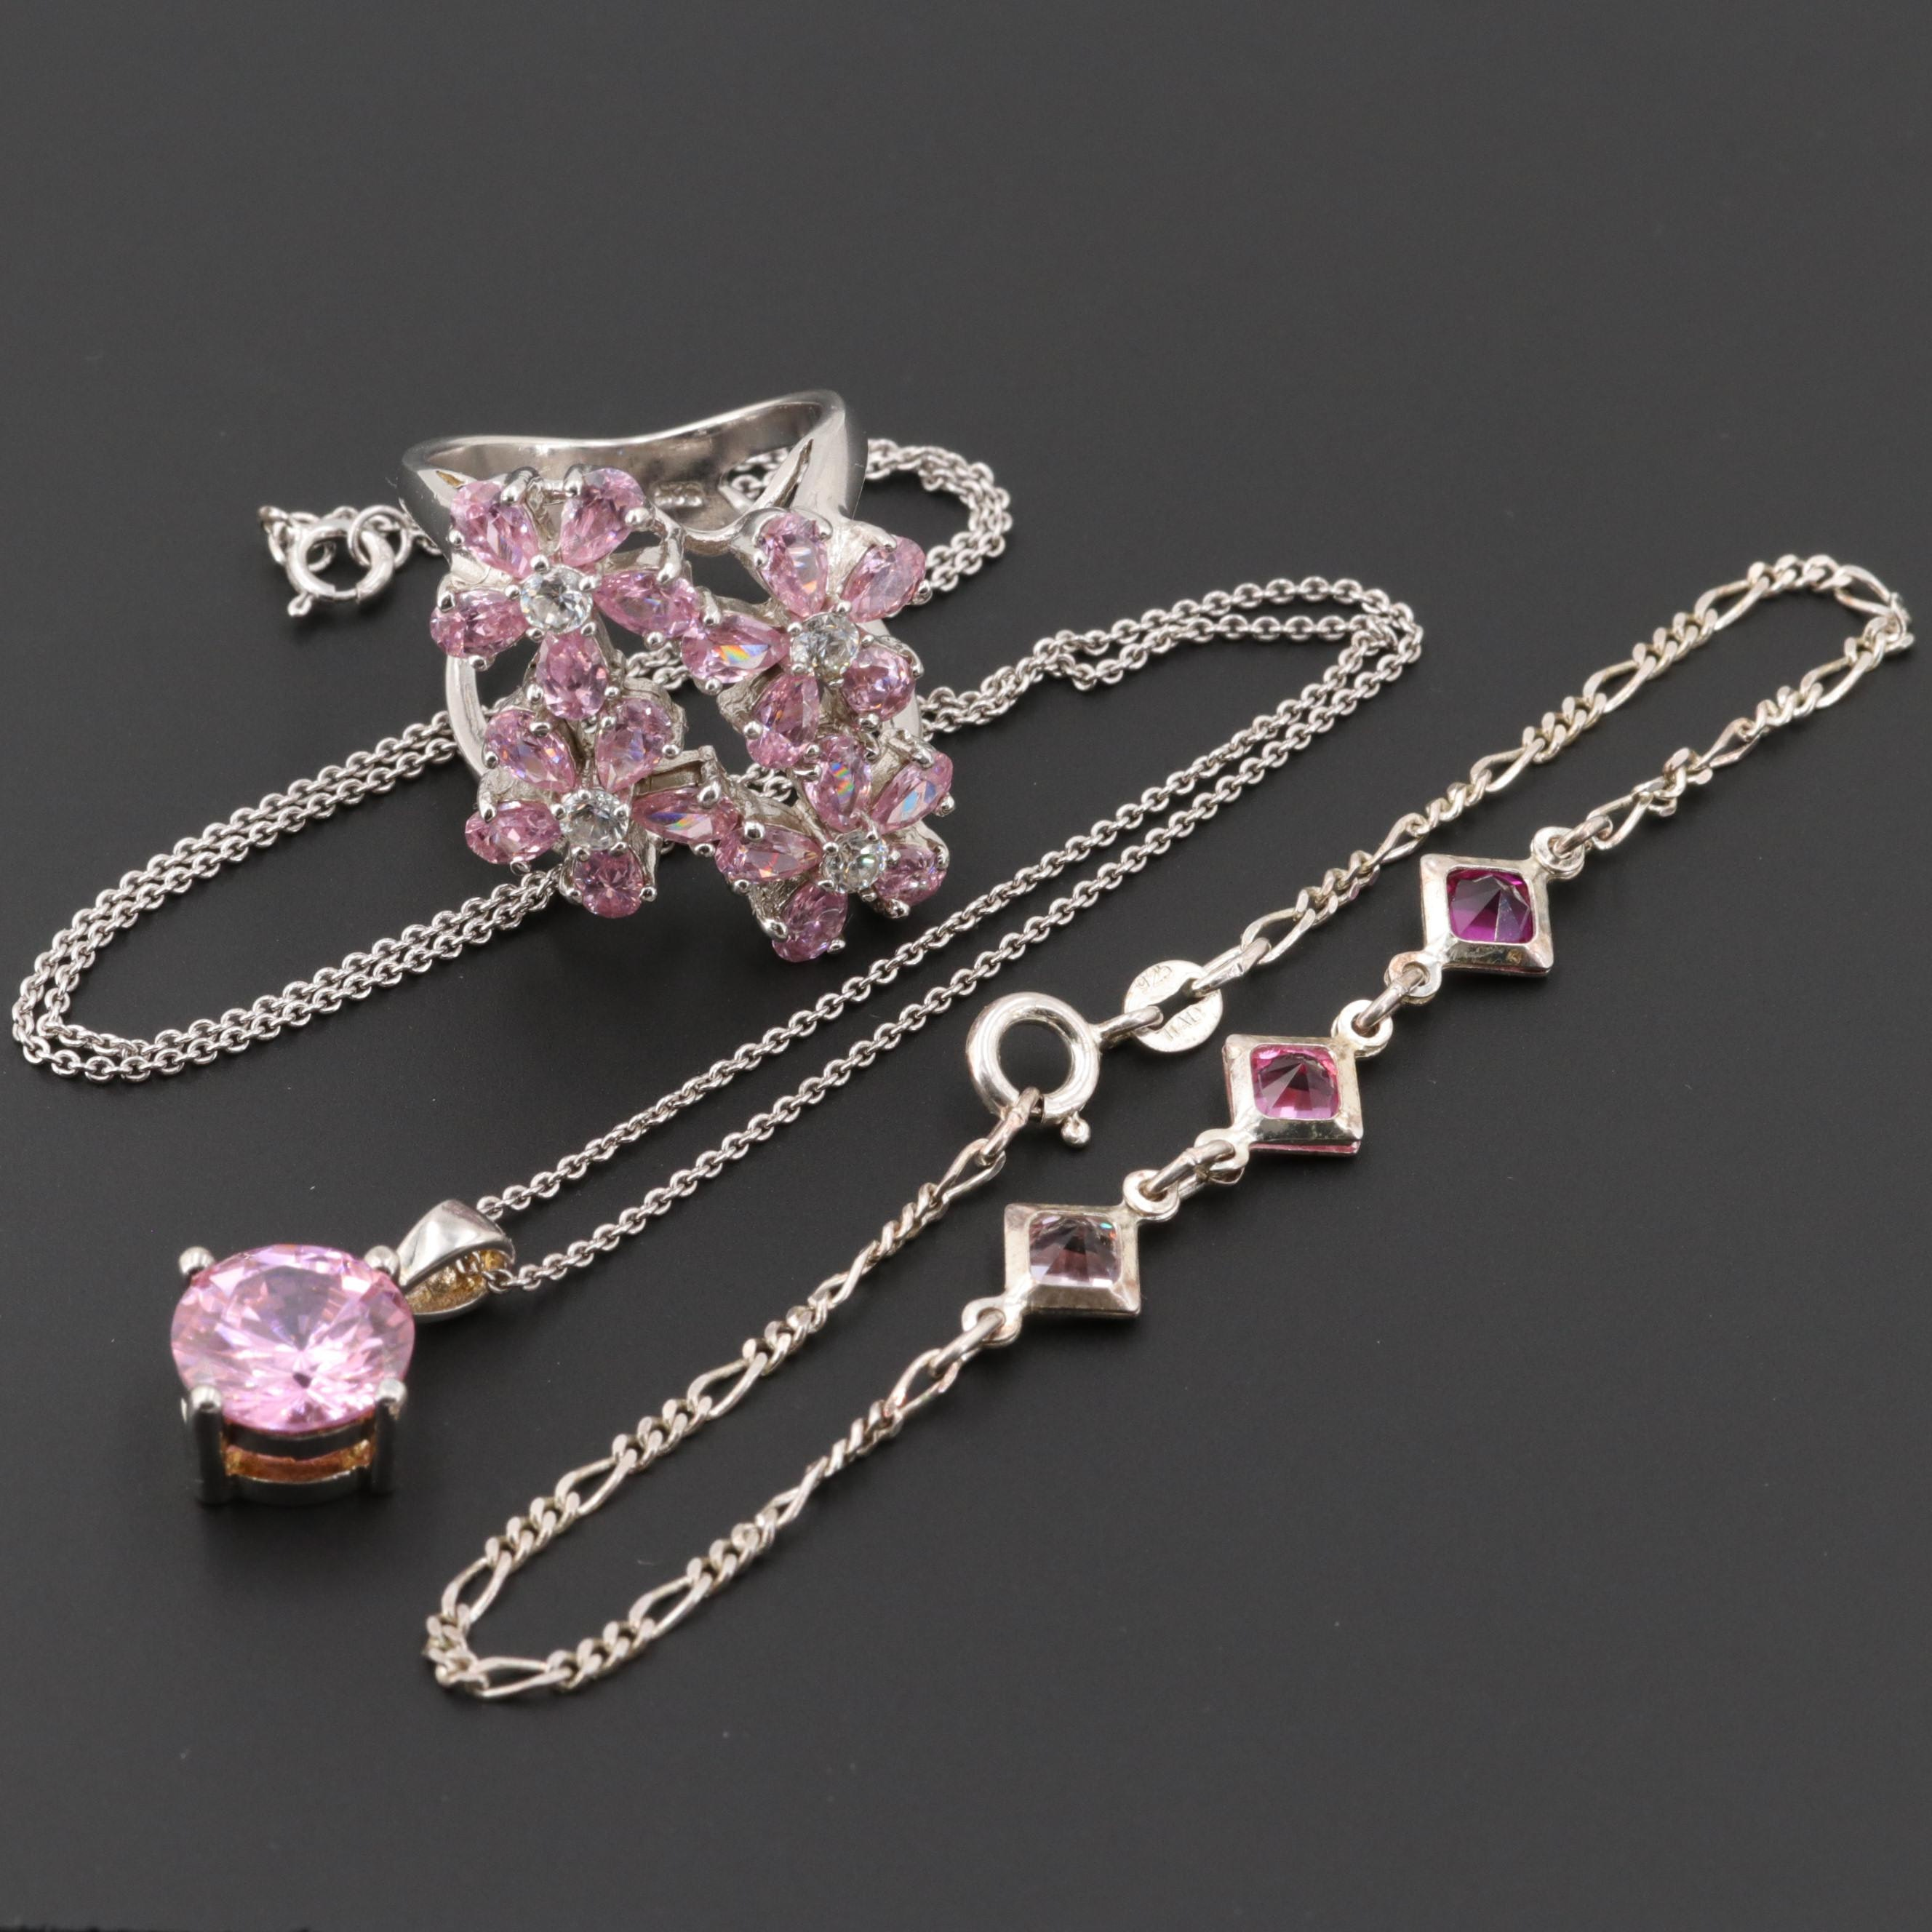 Sterling Silver Cubic Zirconia and Glass Ring Necklace and Bracelet